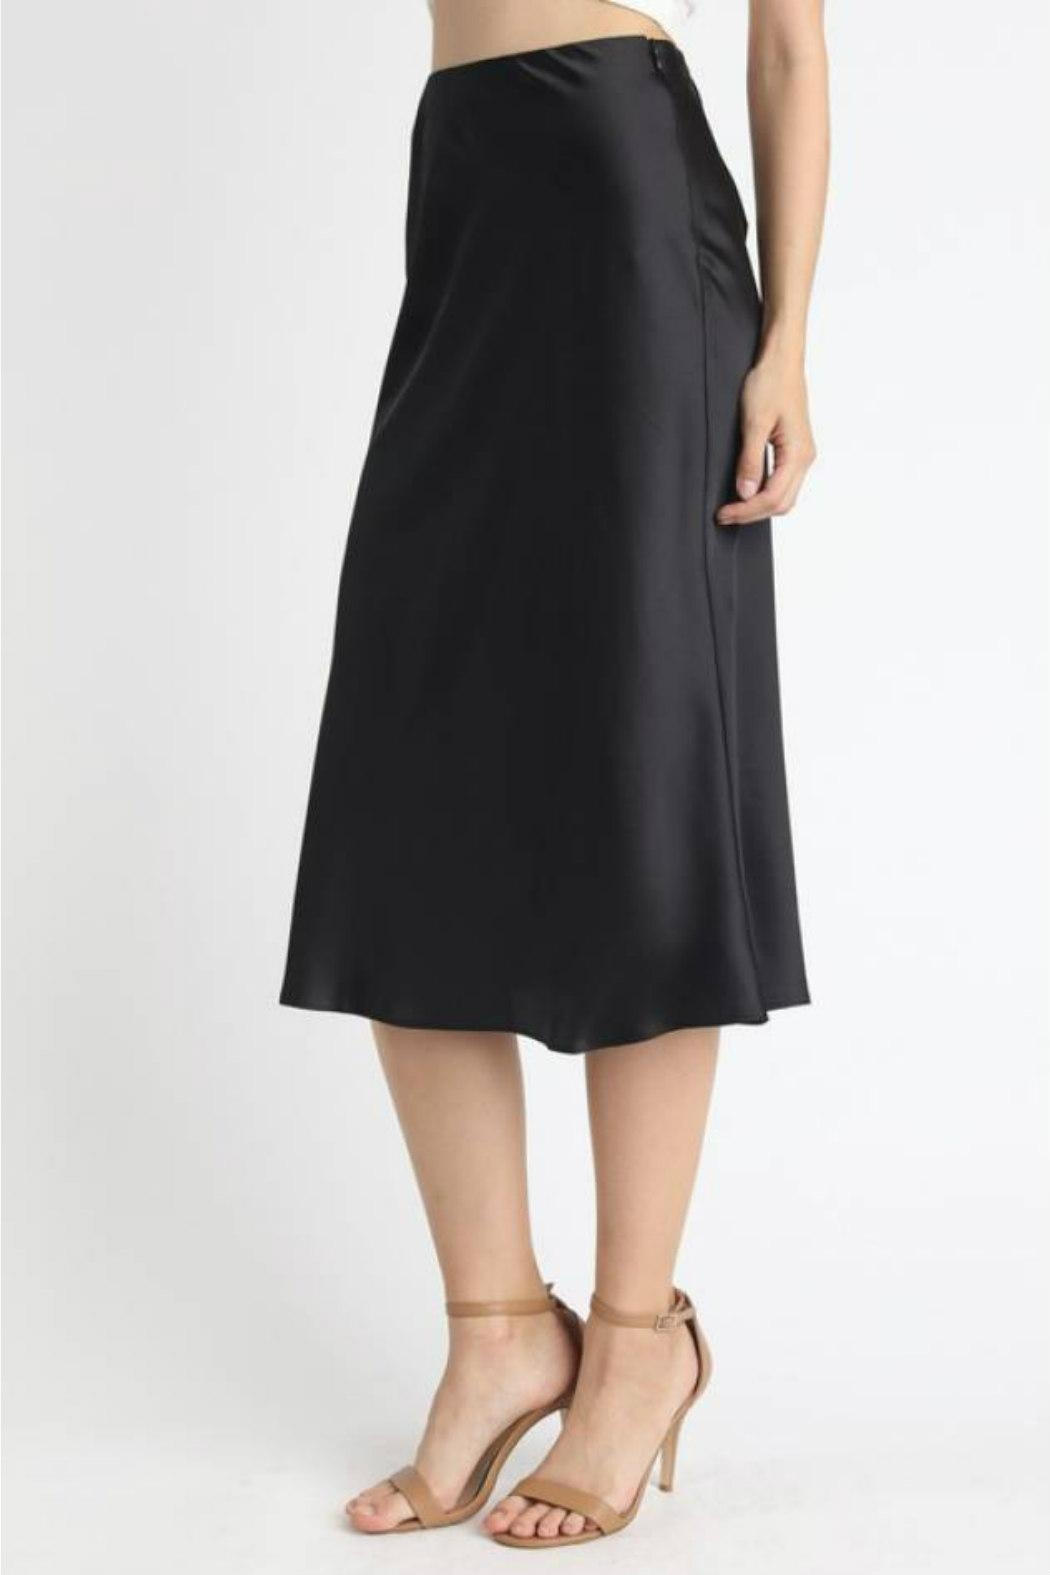 essue Satin Midi Skirt - Front Full Image